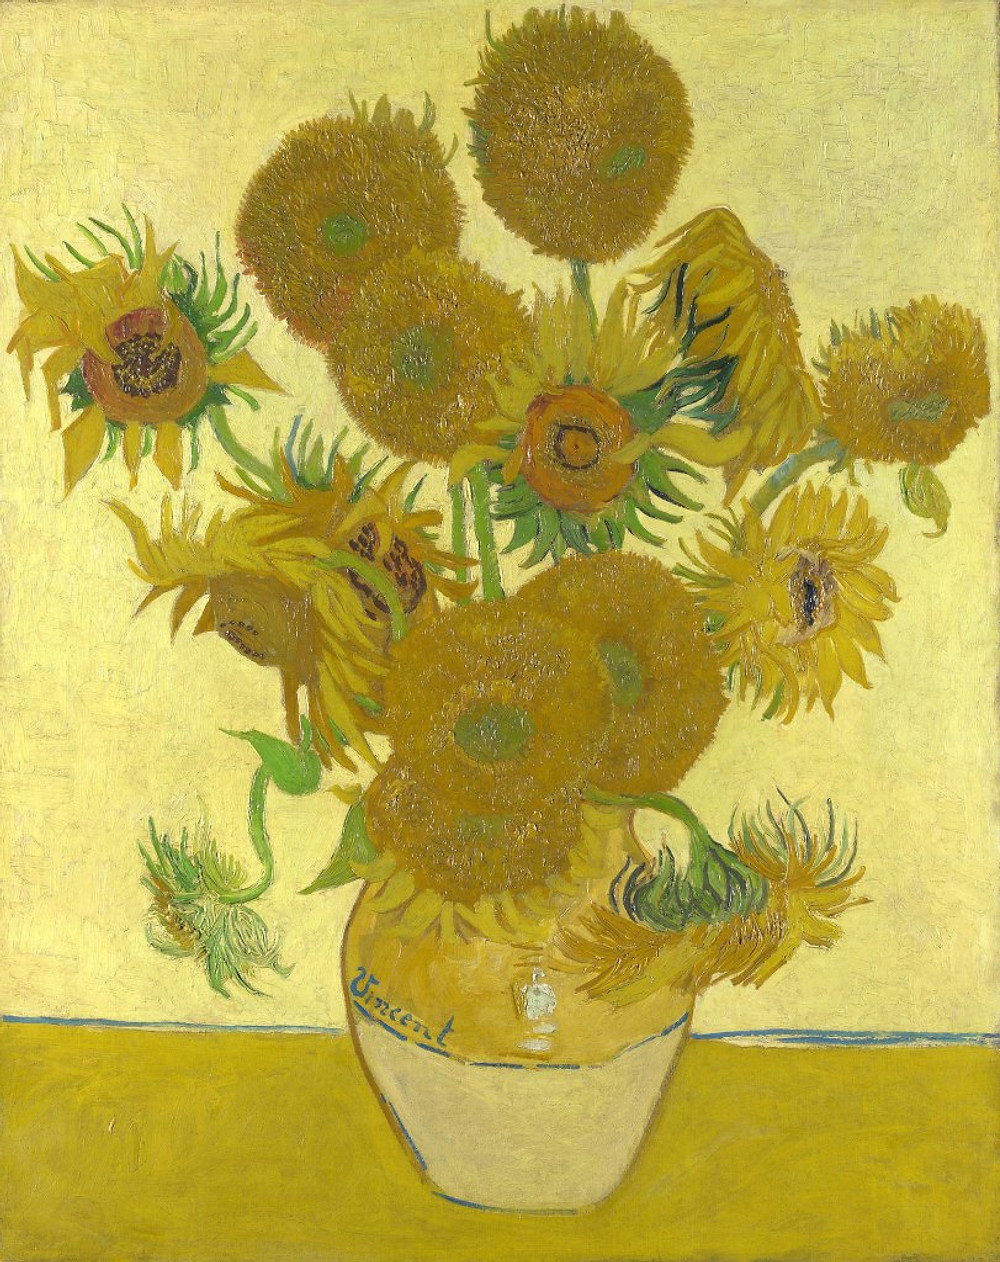 Sunflowers in a vase painting by Vincent Van Gogh Ieclectica